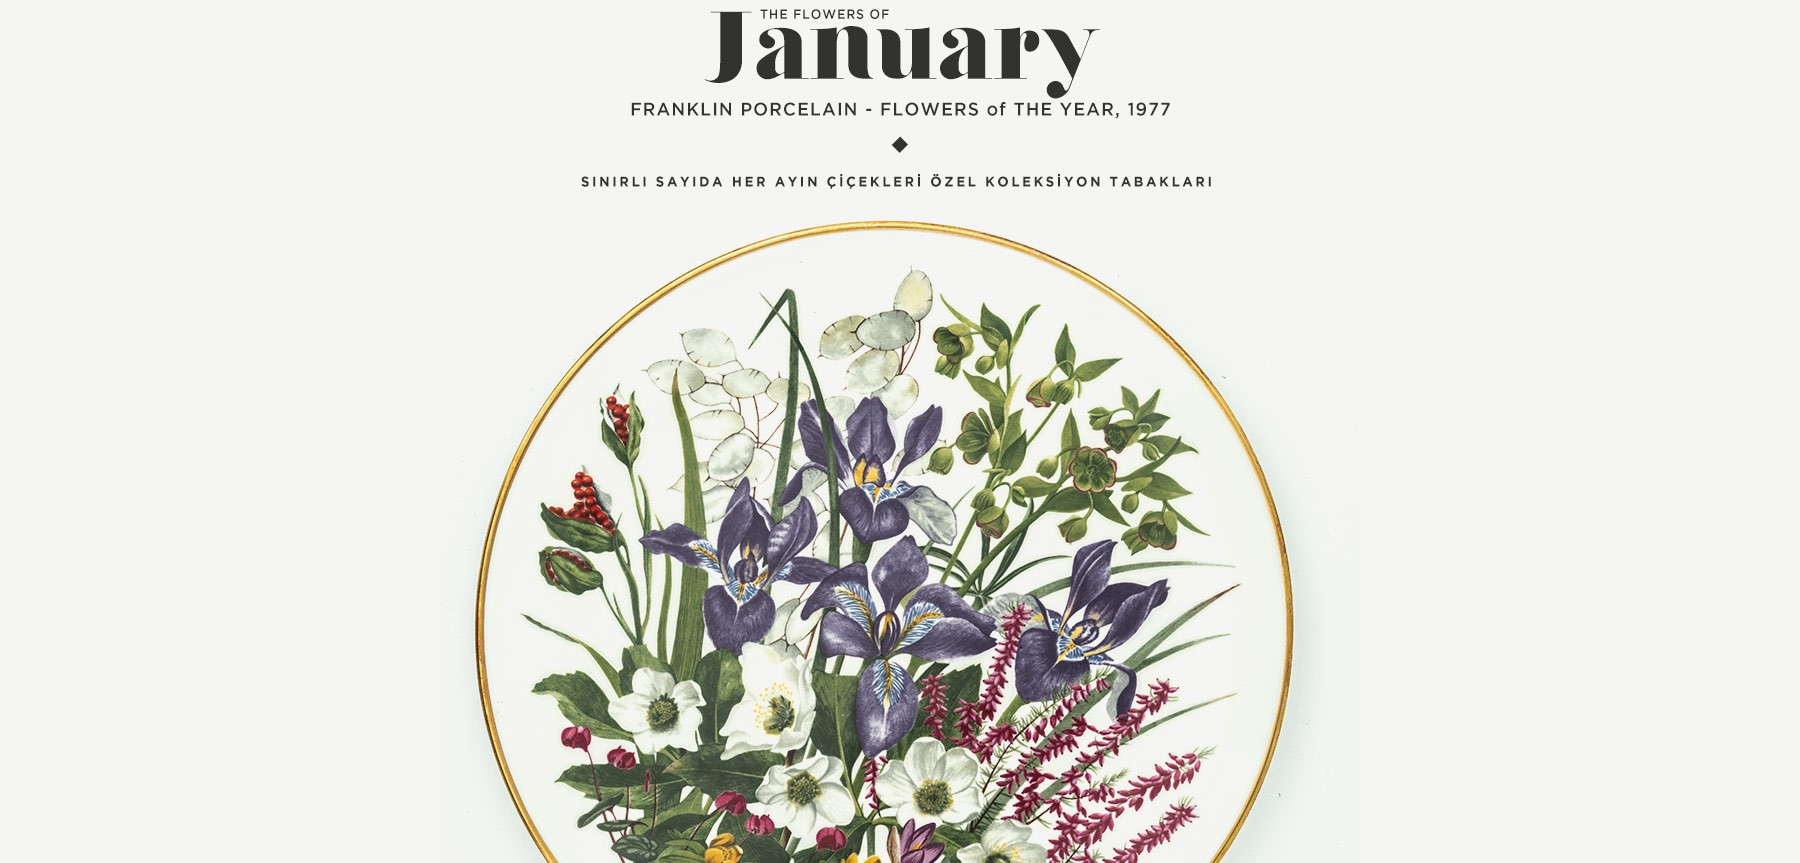 Ocak'ta Açan Çiçekler The Flowers Of January'in resmi